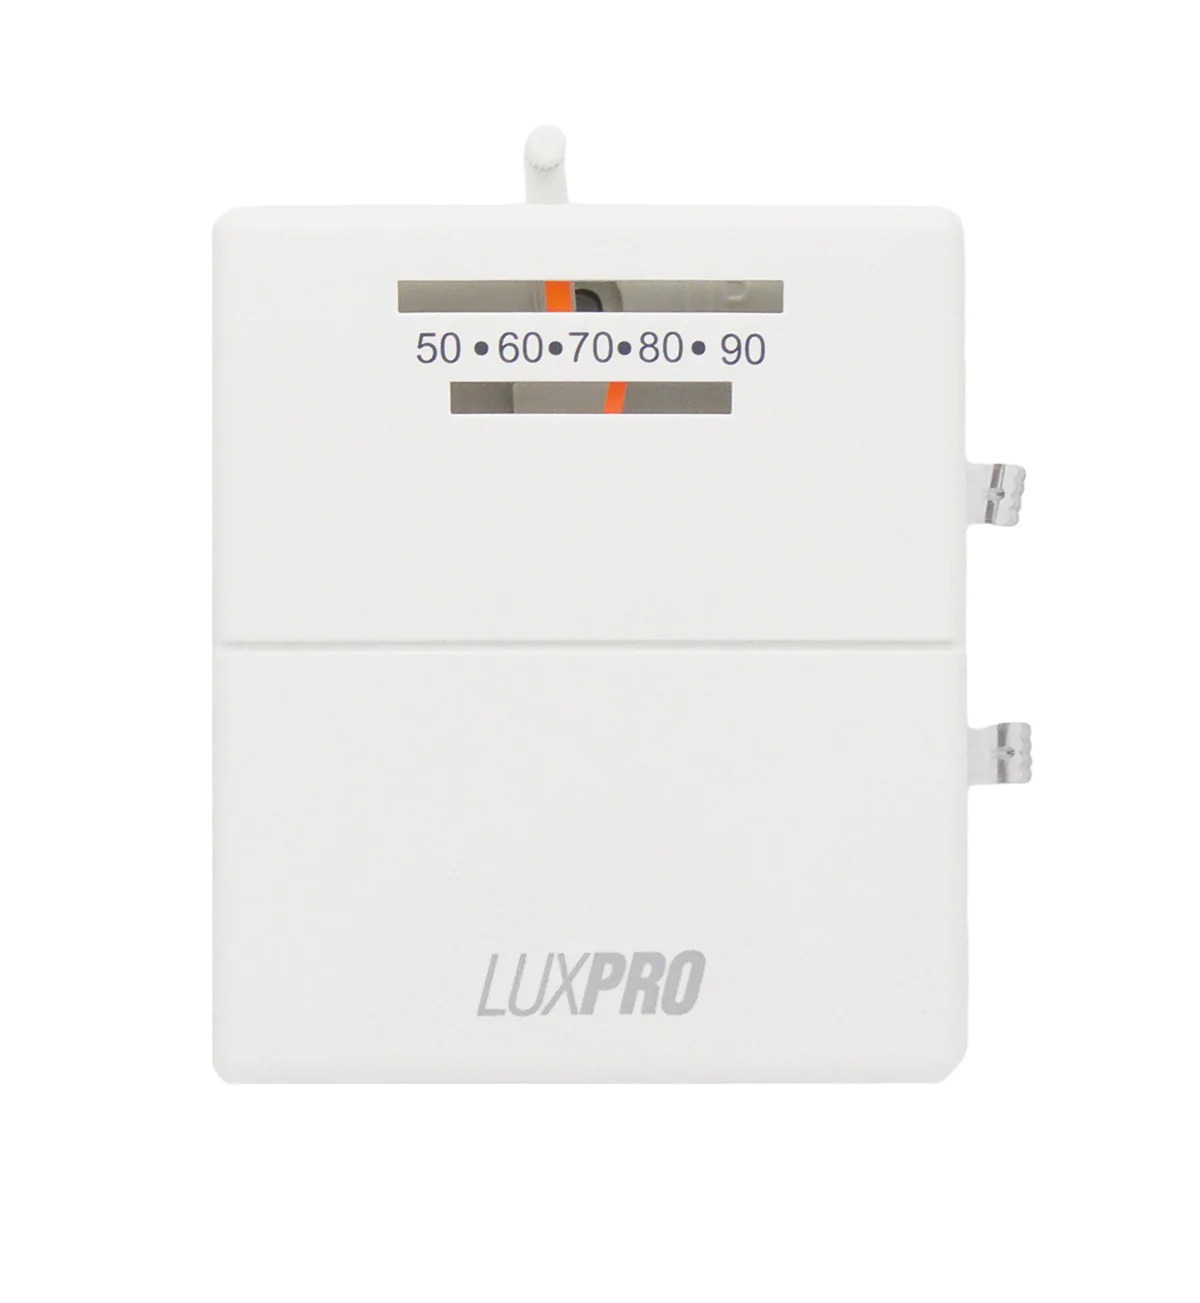 luxpro psm40sa mechanical snap action 2 wire heat only thermostat lennox thermostat wiring diagram luxpro thermostat 2wire wiring diagram [ 1200 x 1303 Pixel ]